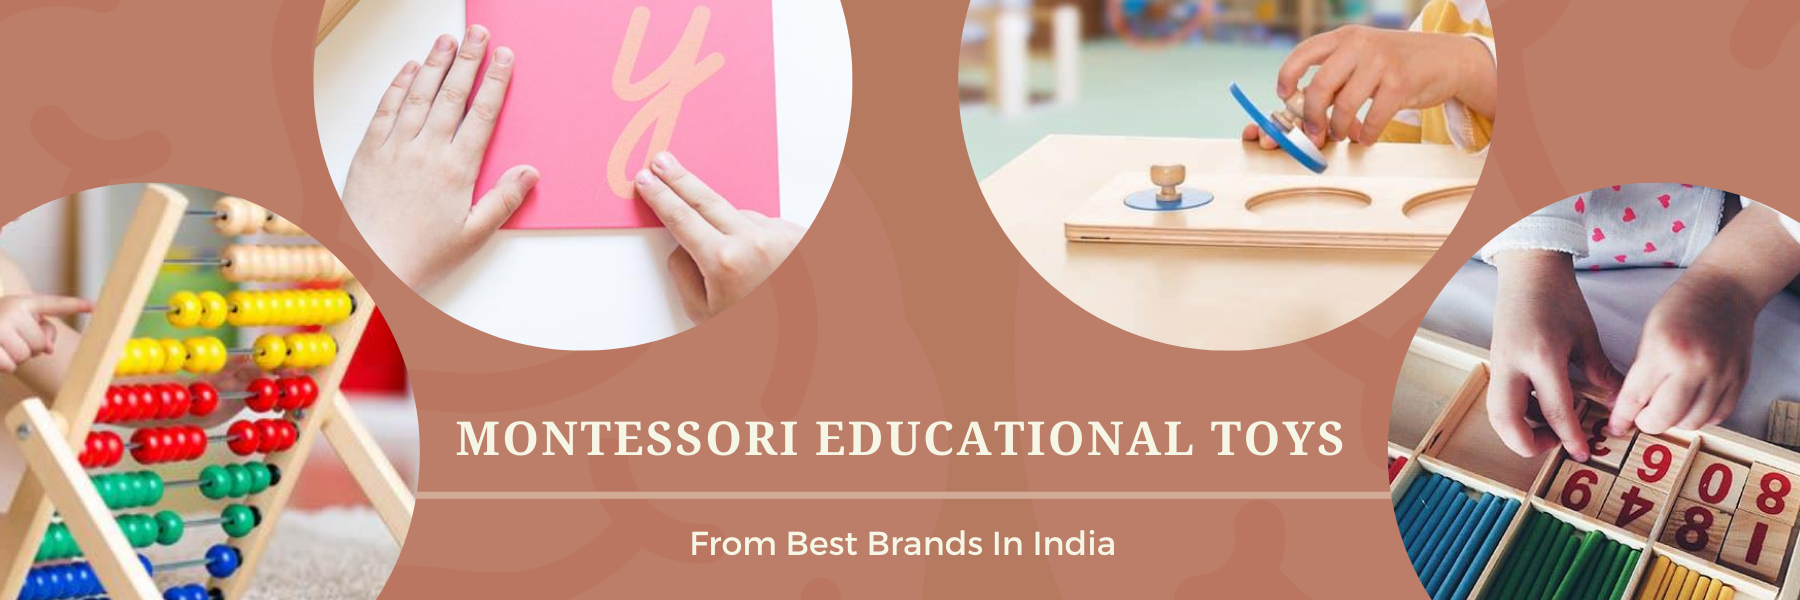 Montessori Educational Toys for Toddlers and Kids Online at GiftWaley